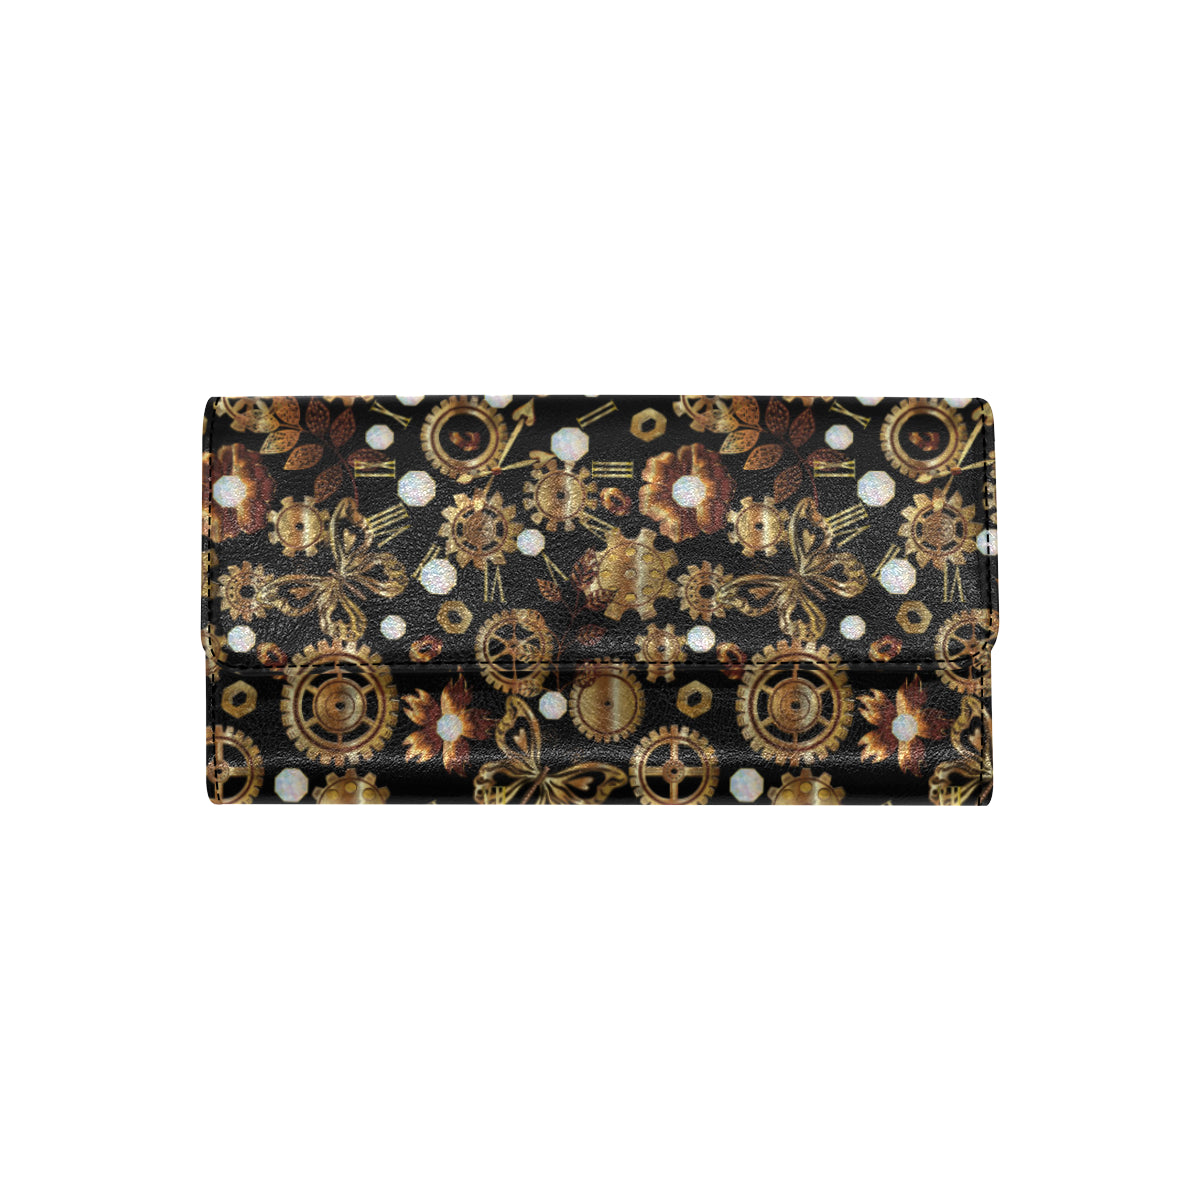 Steampunk Butterfly Design Themed Print Women Trifold Wallet